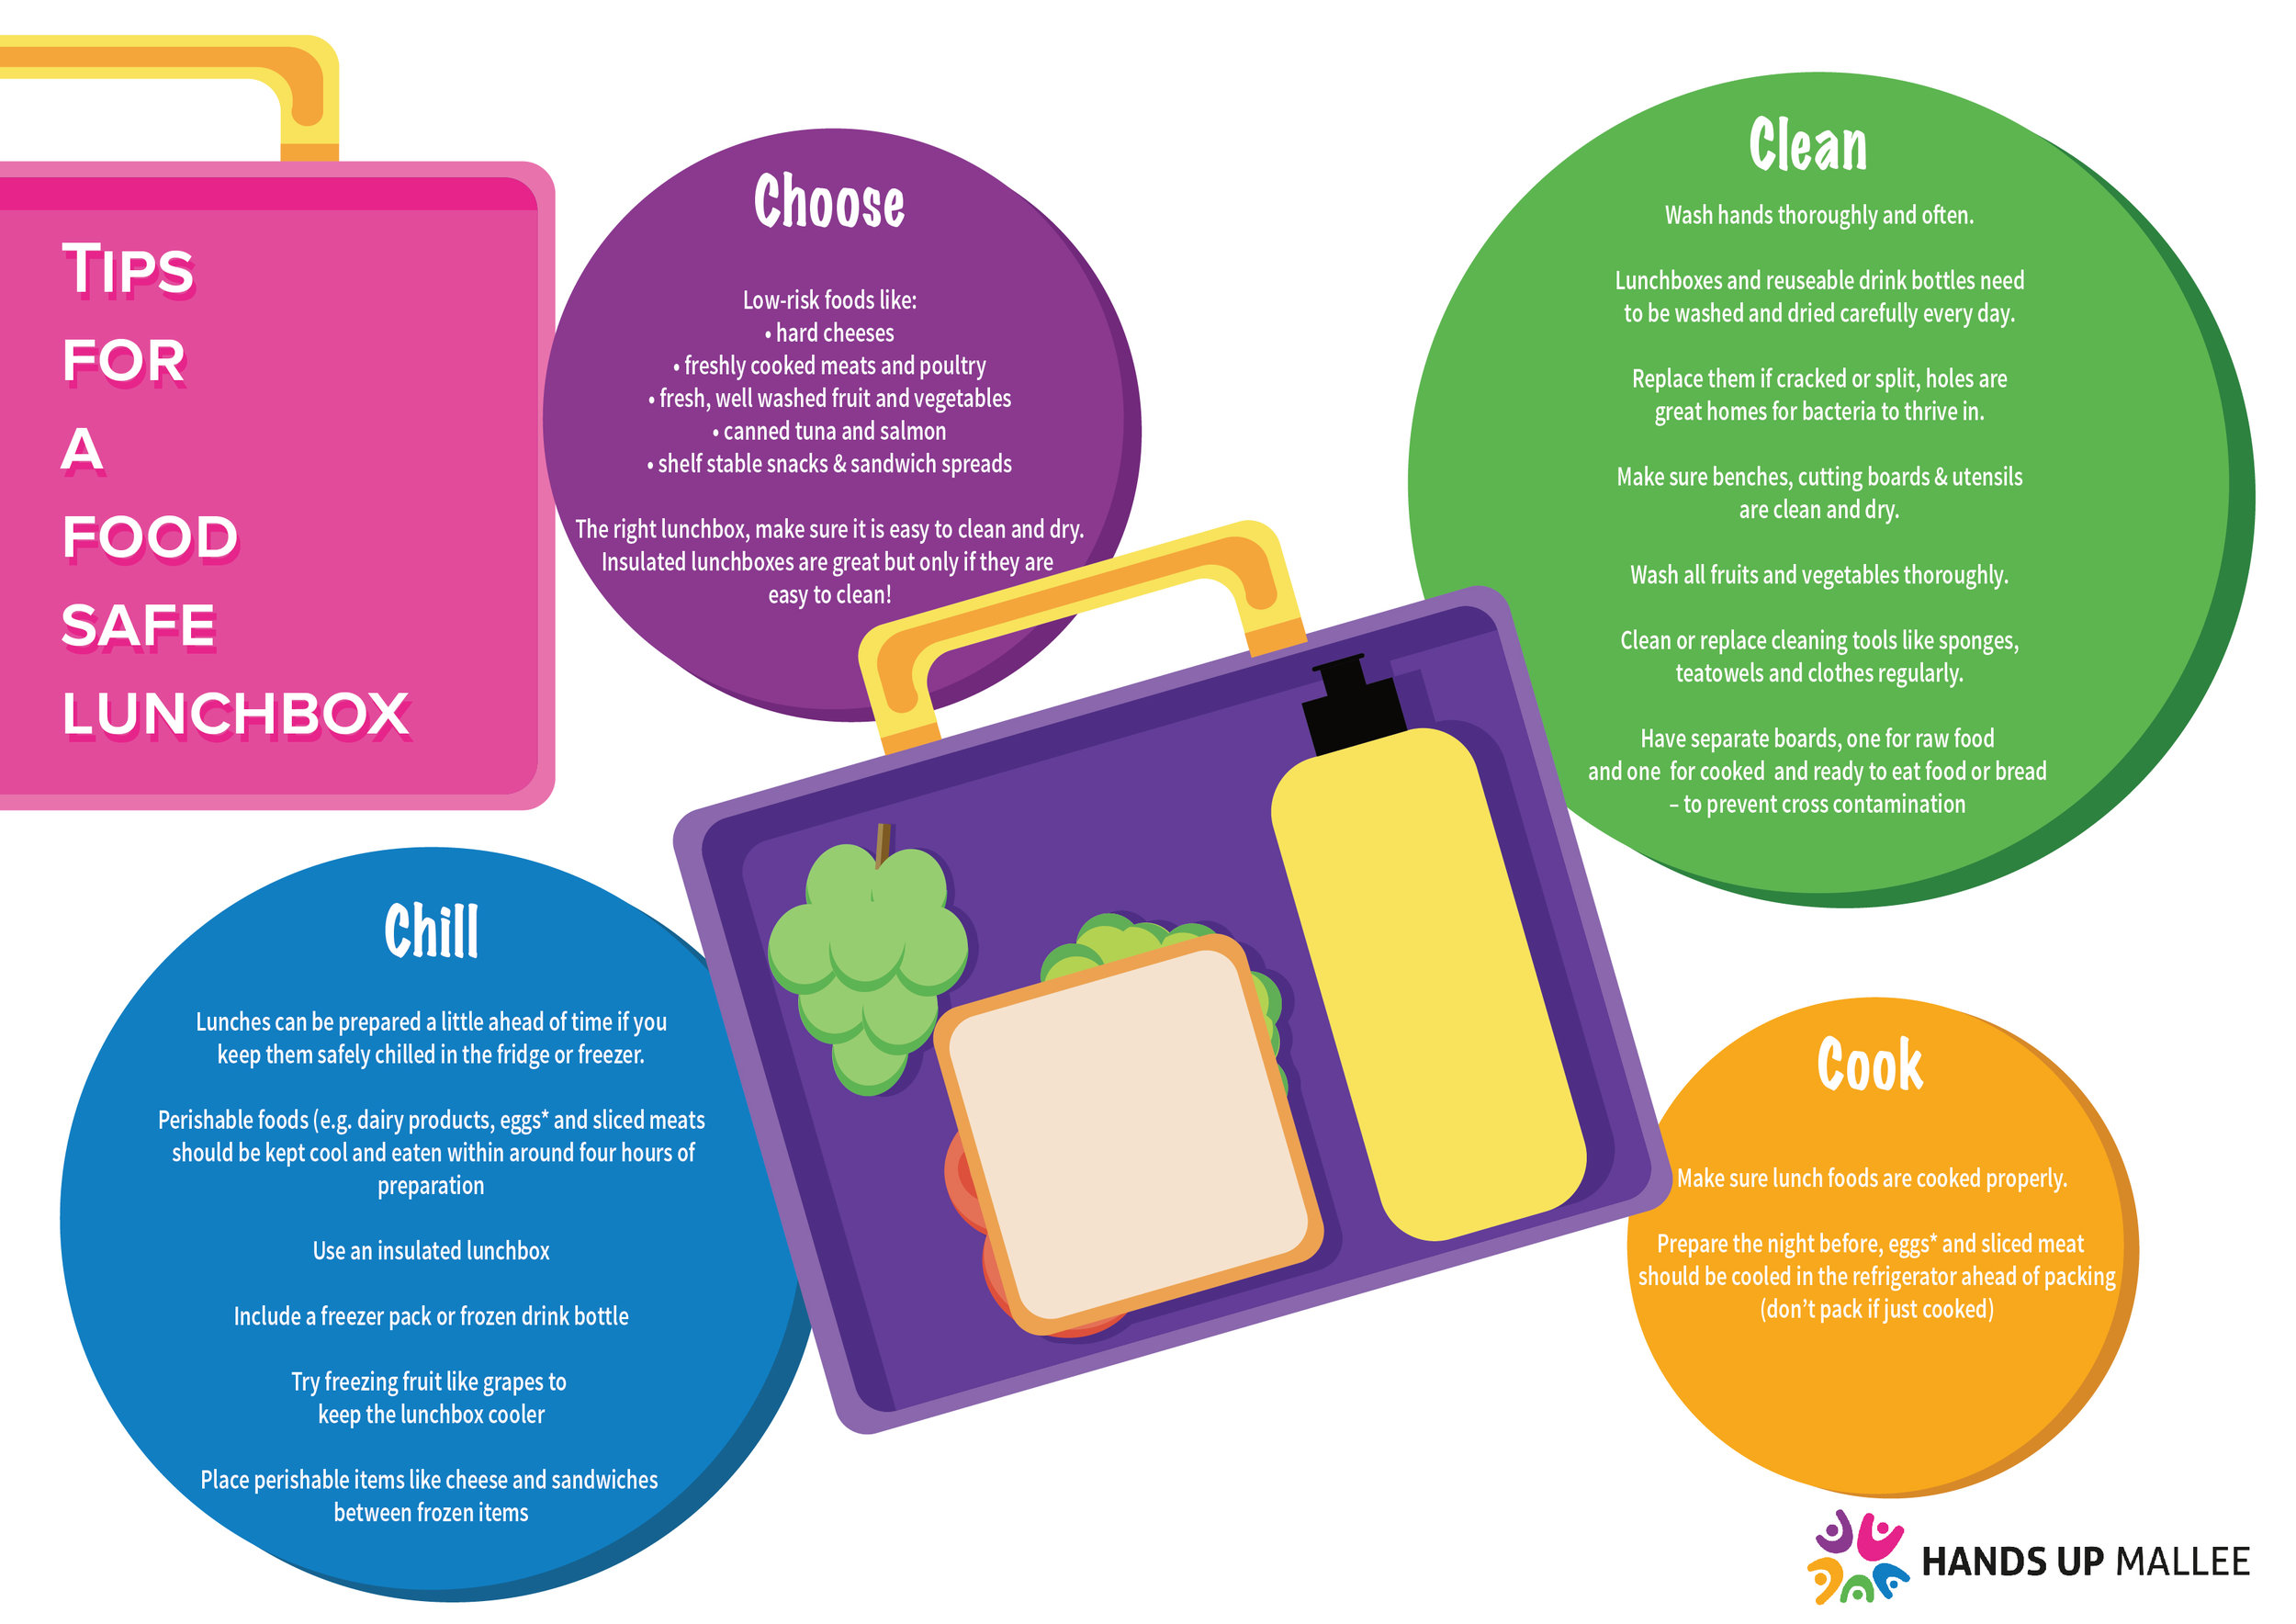 Tips for a food safe lunchbox - Download this guide for a food safe lunchbox